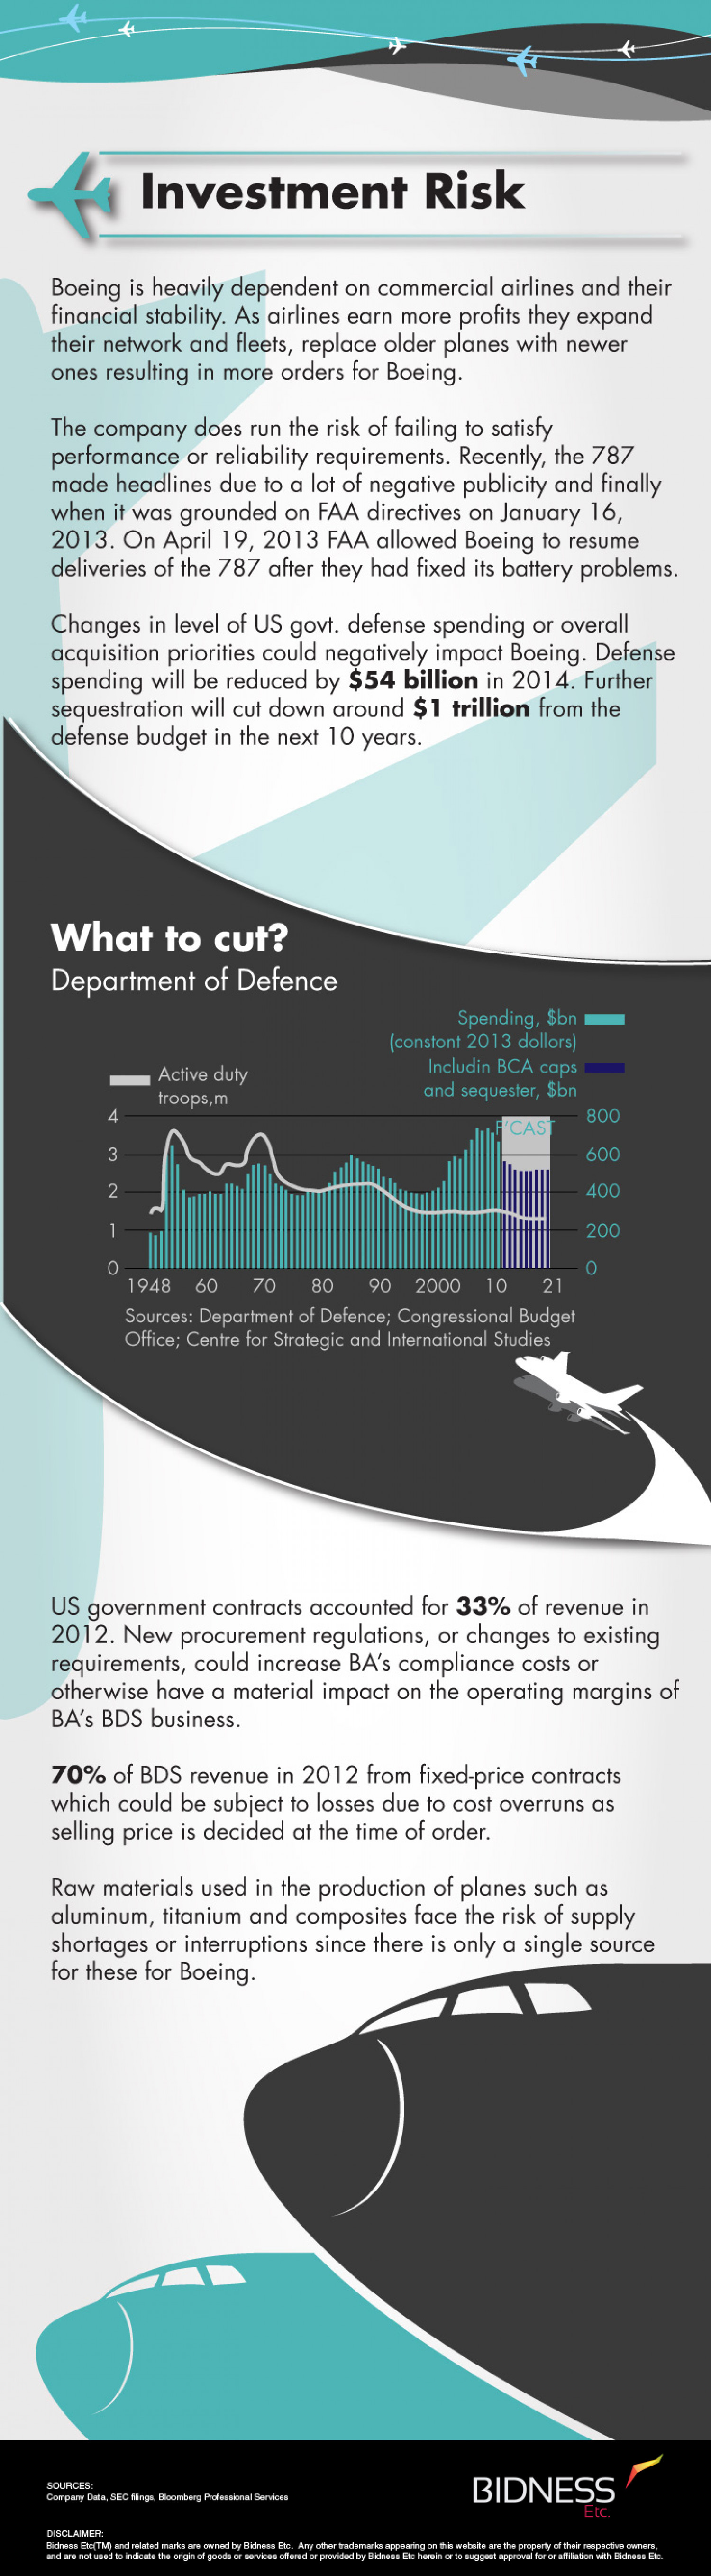 Boeing (BA) Investment Risks Infographic